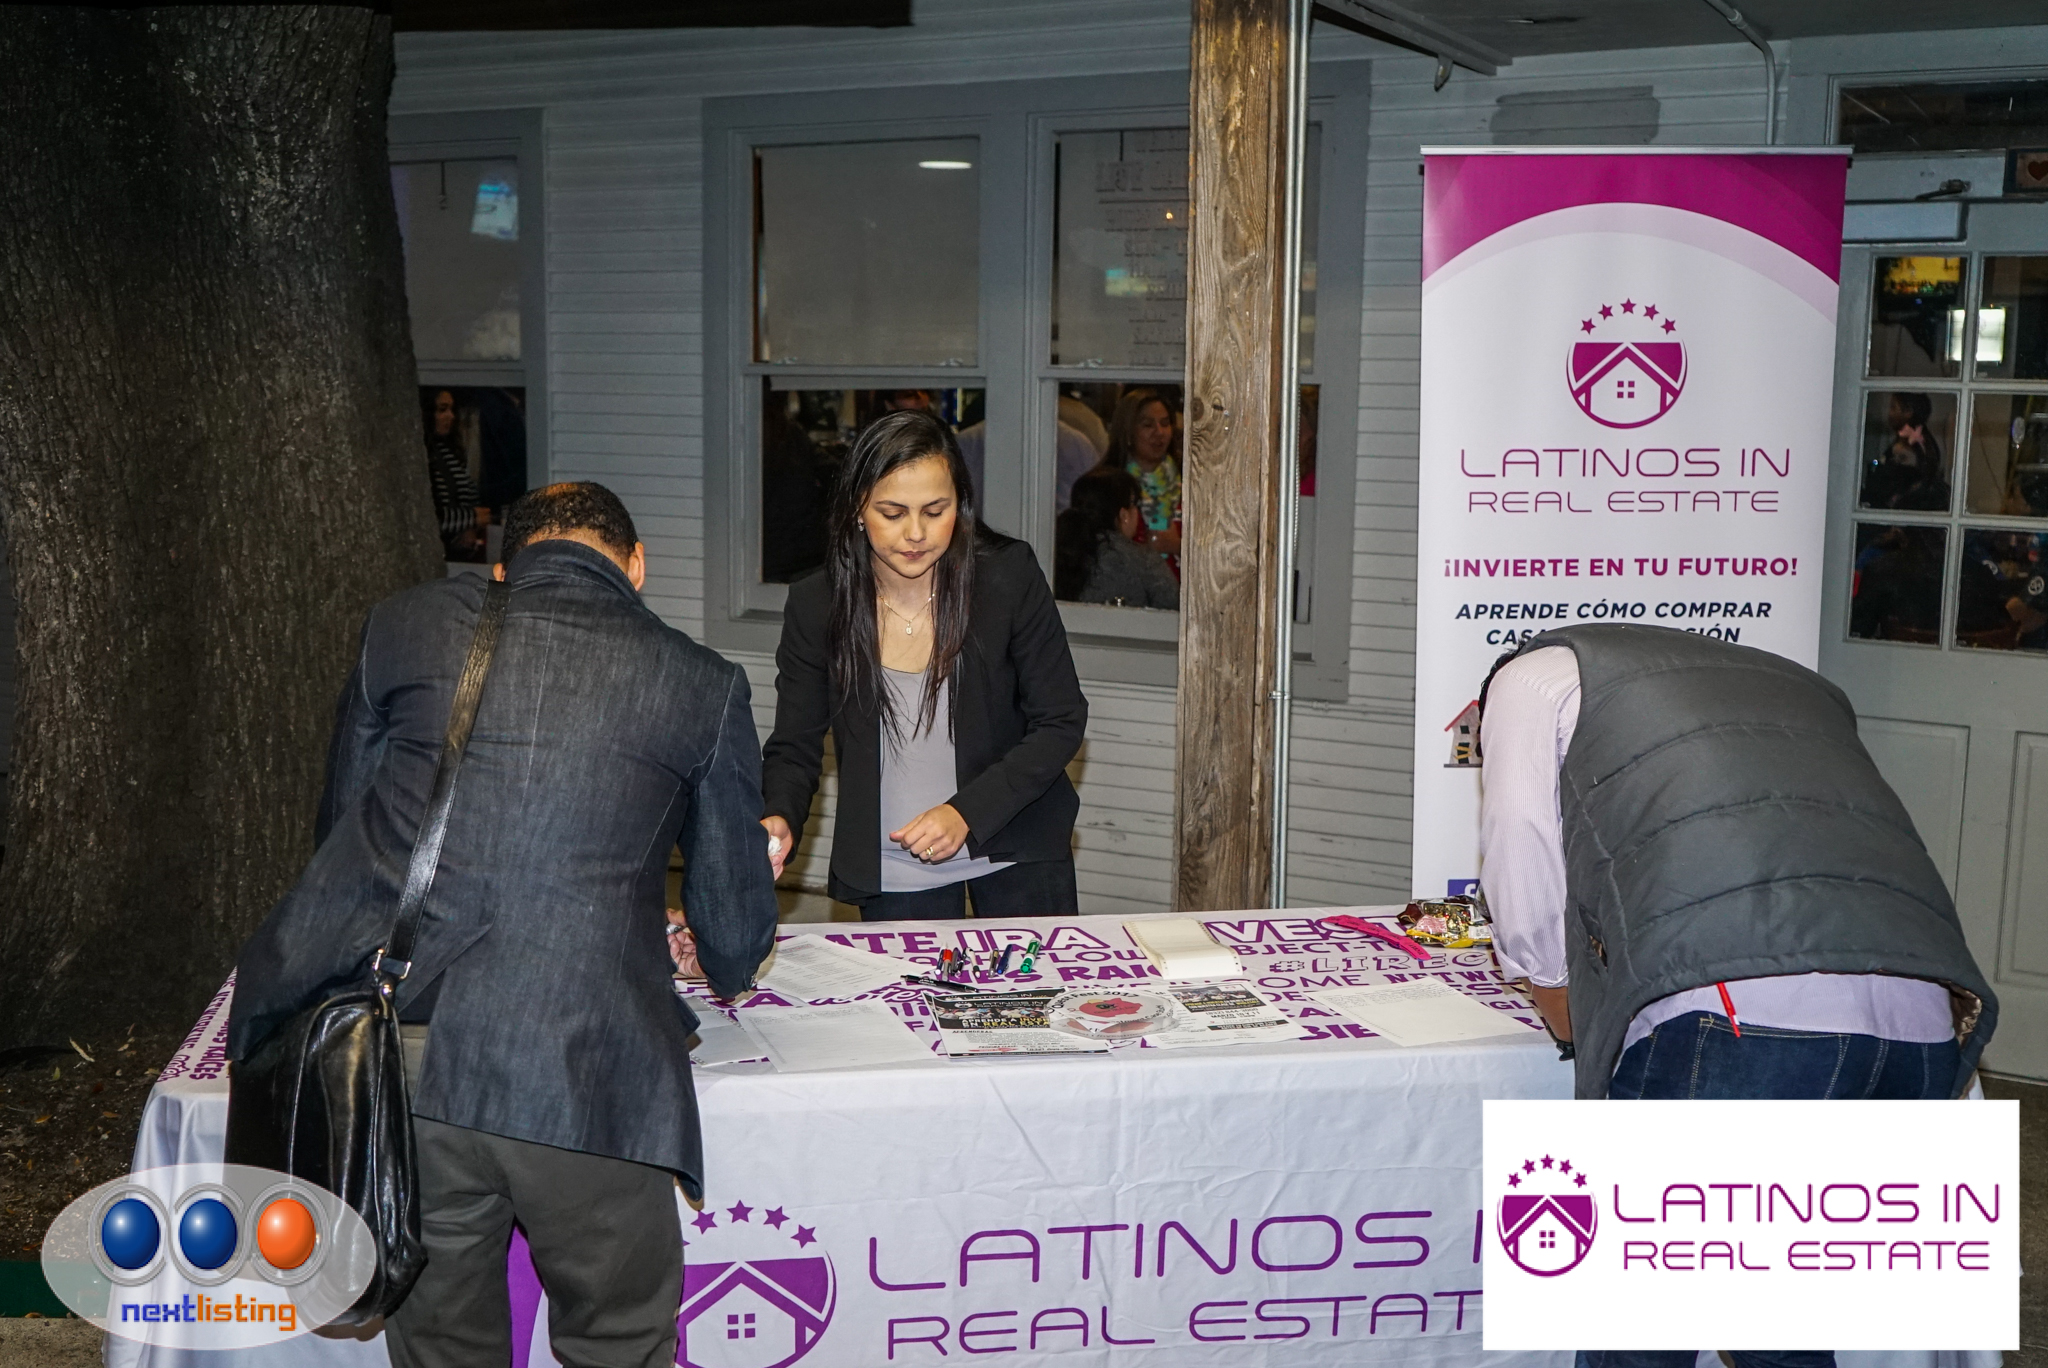 Evento Latino en Real Estate